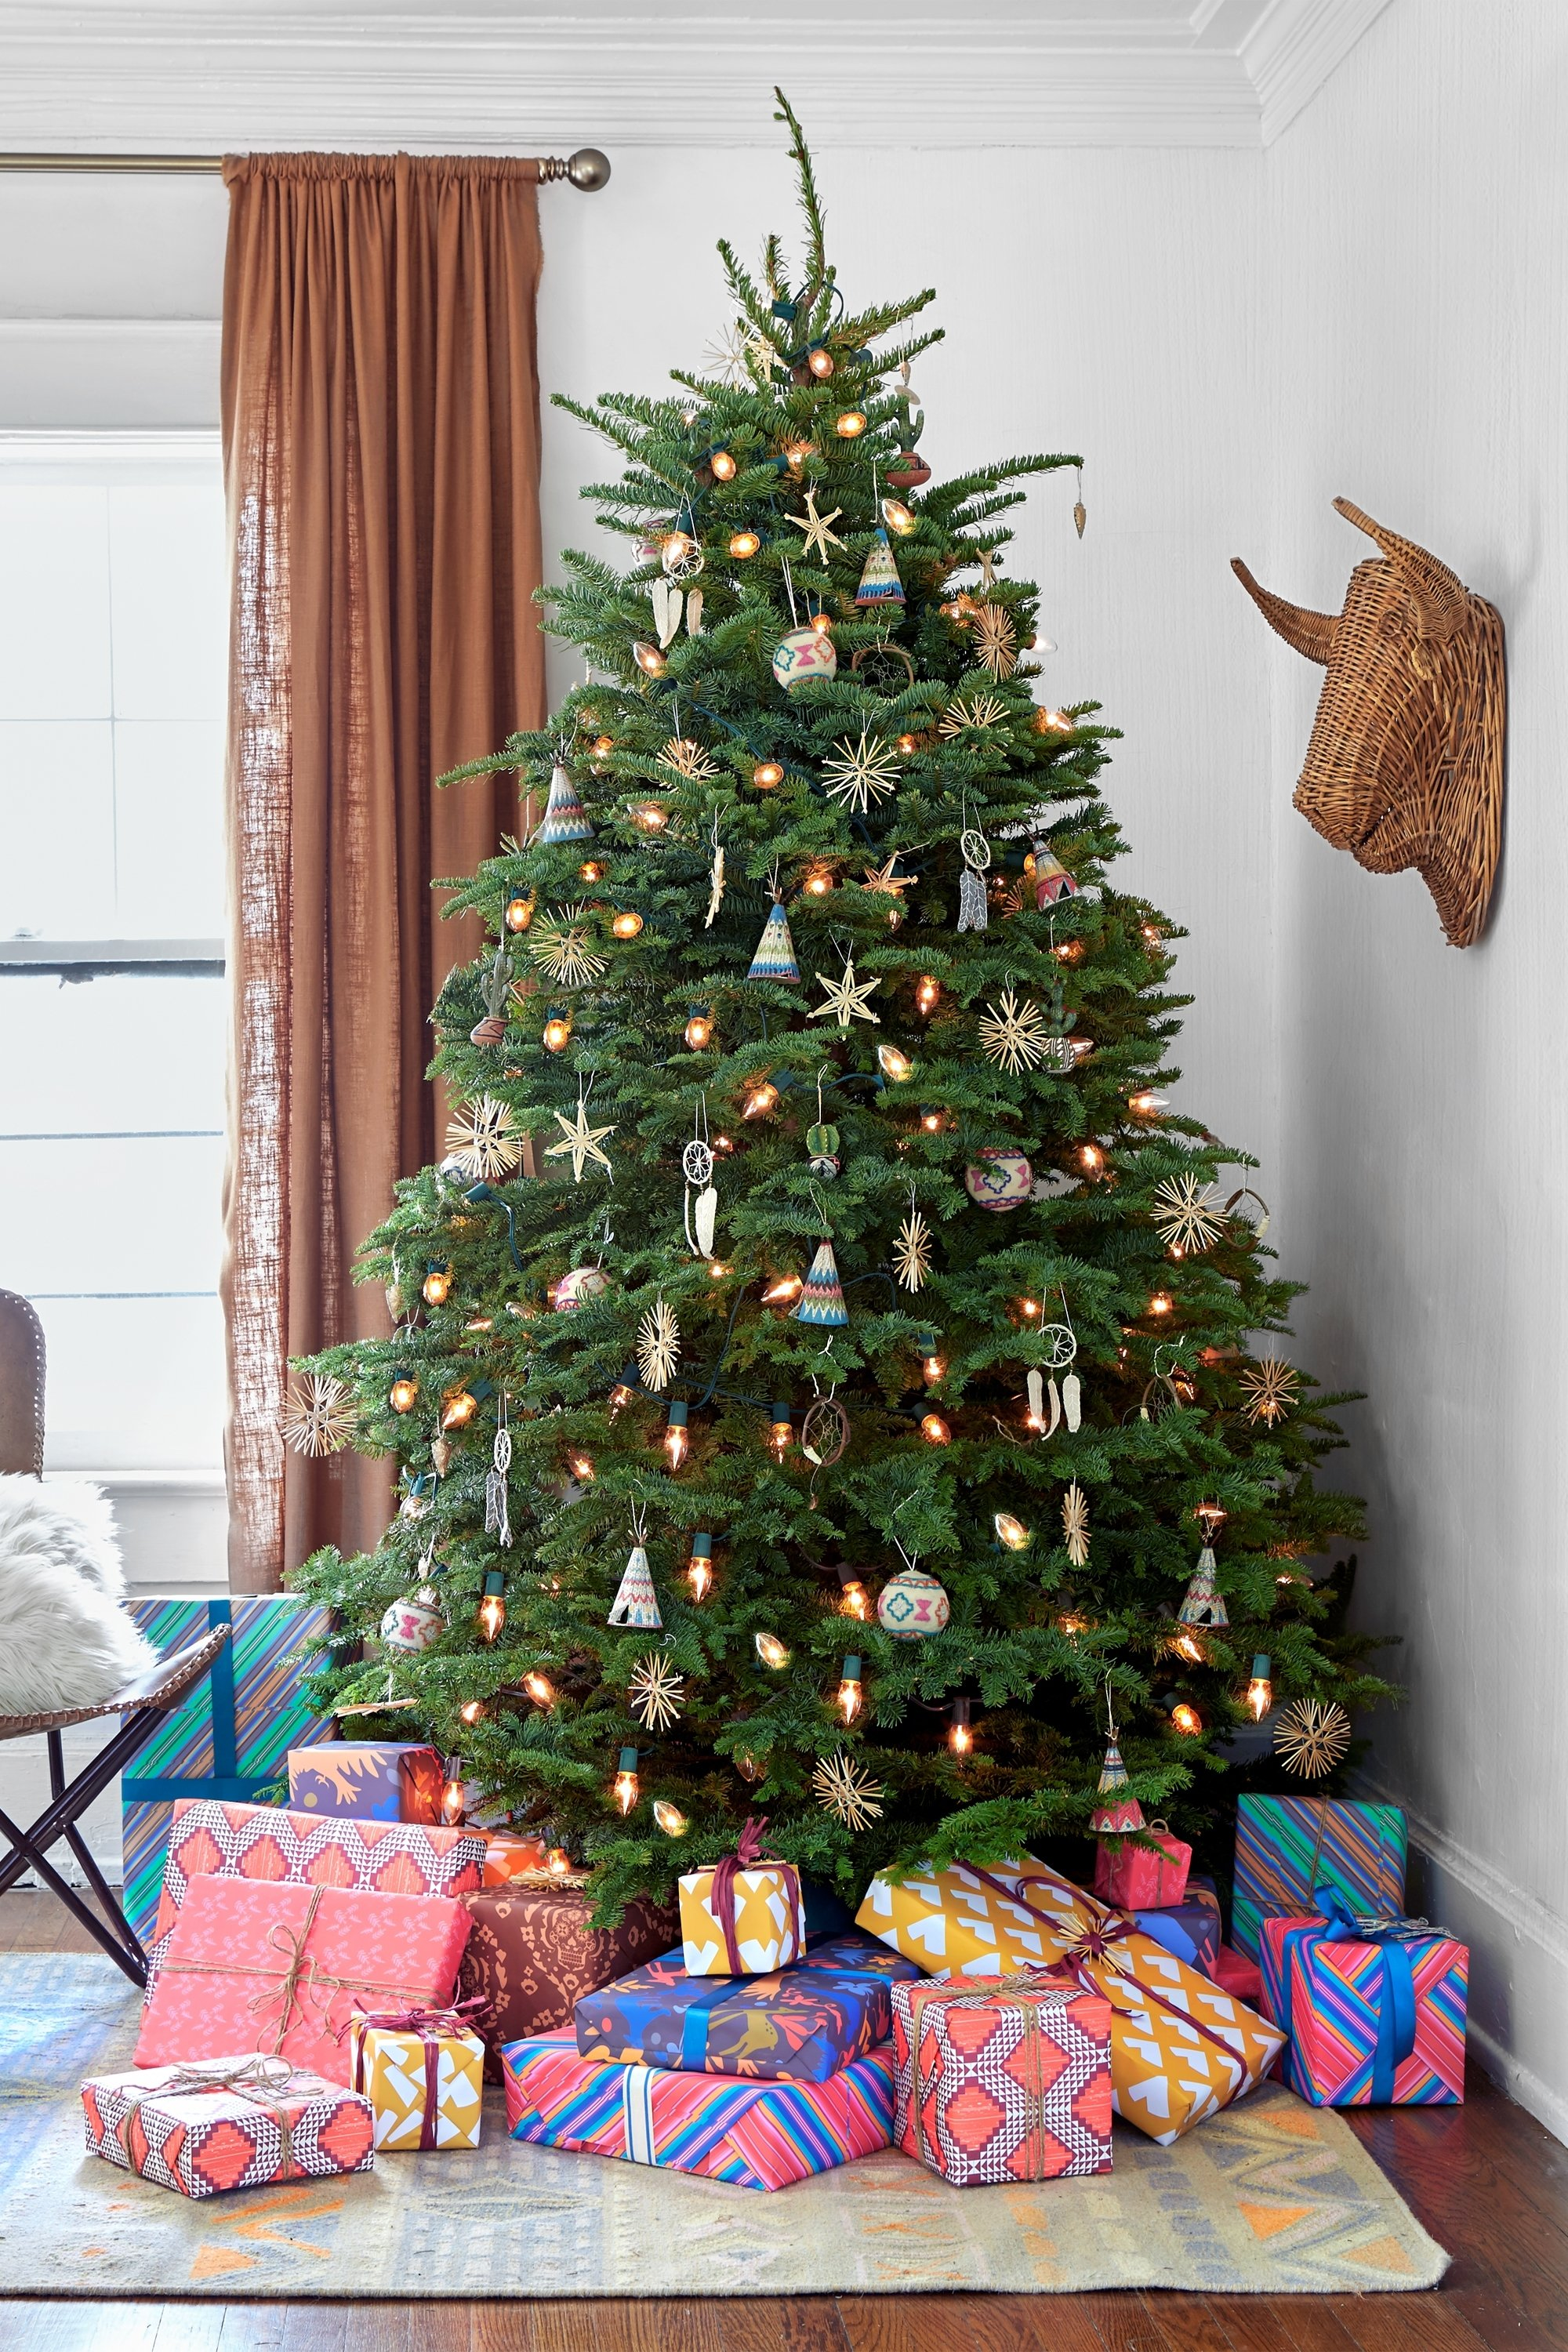 10 Most Popular Christmas Decorating Ideas For 2013 festive christmas decorations bm furnititure